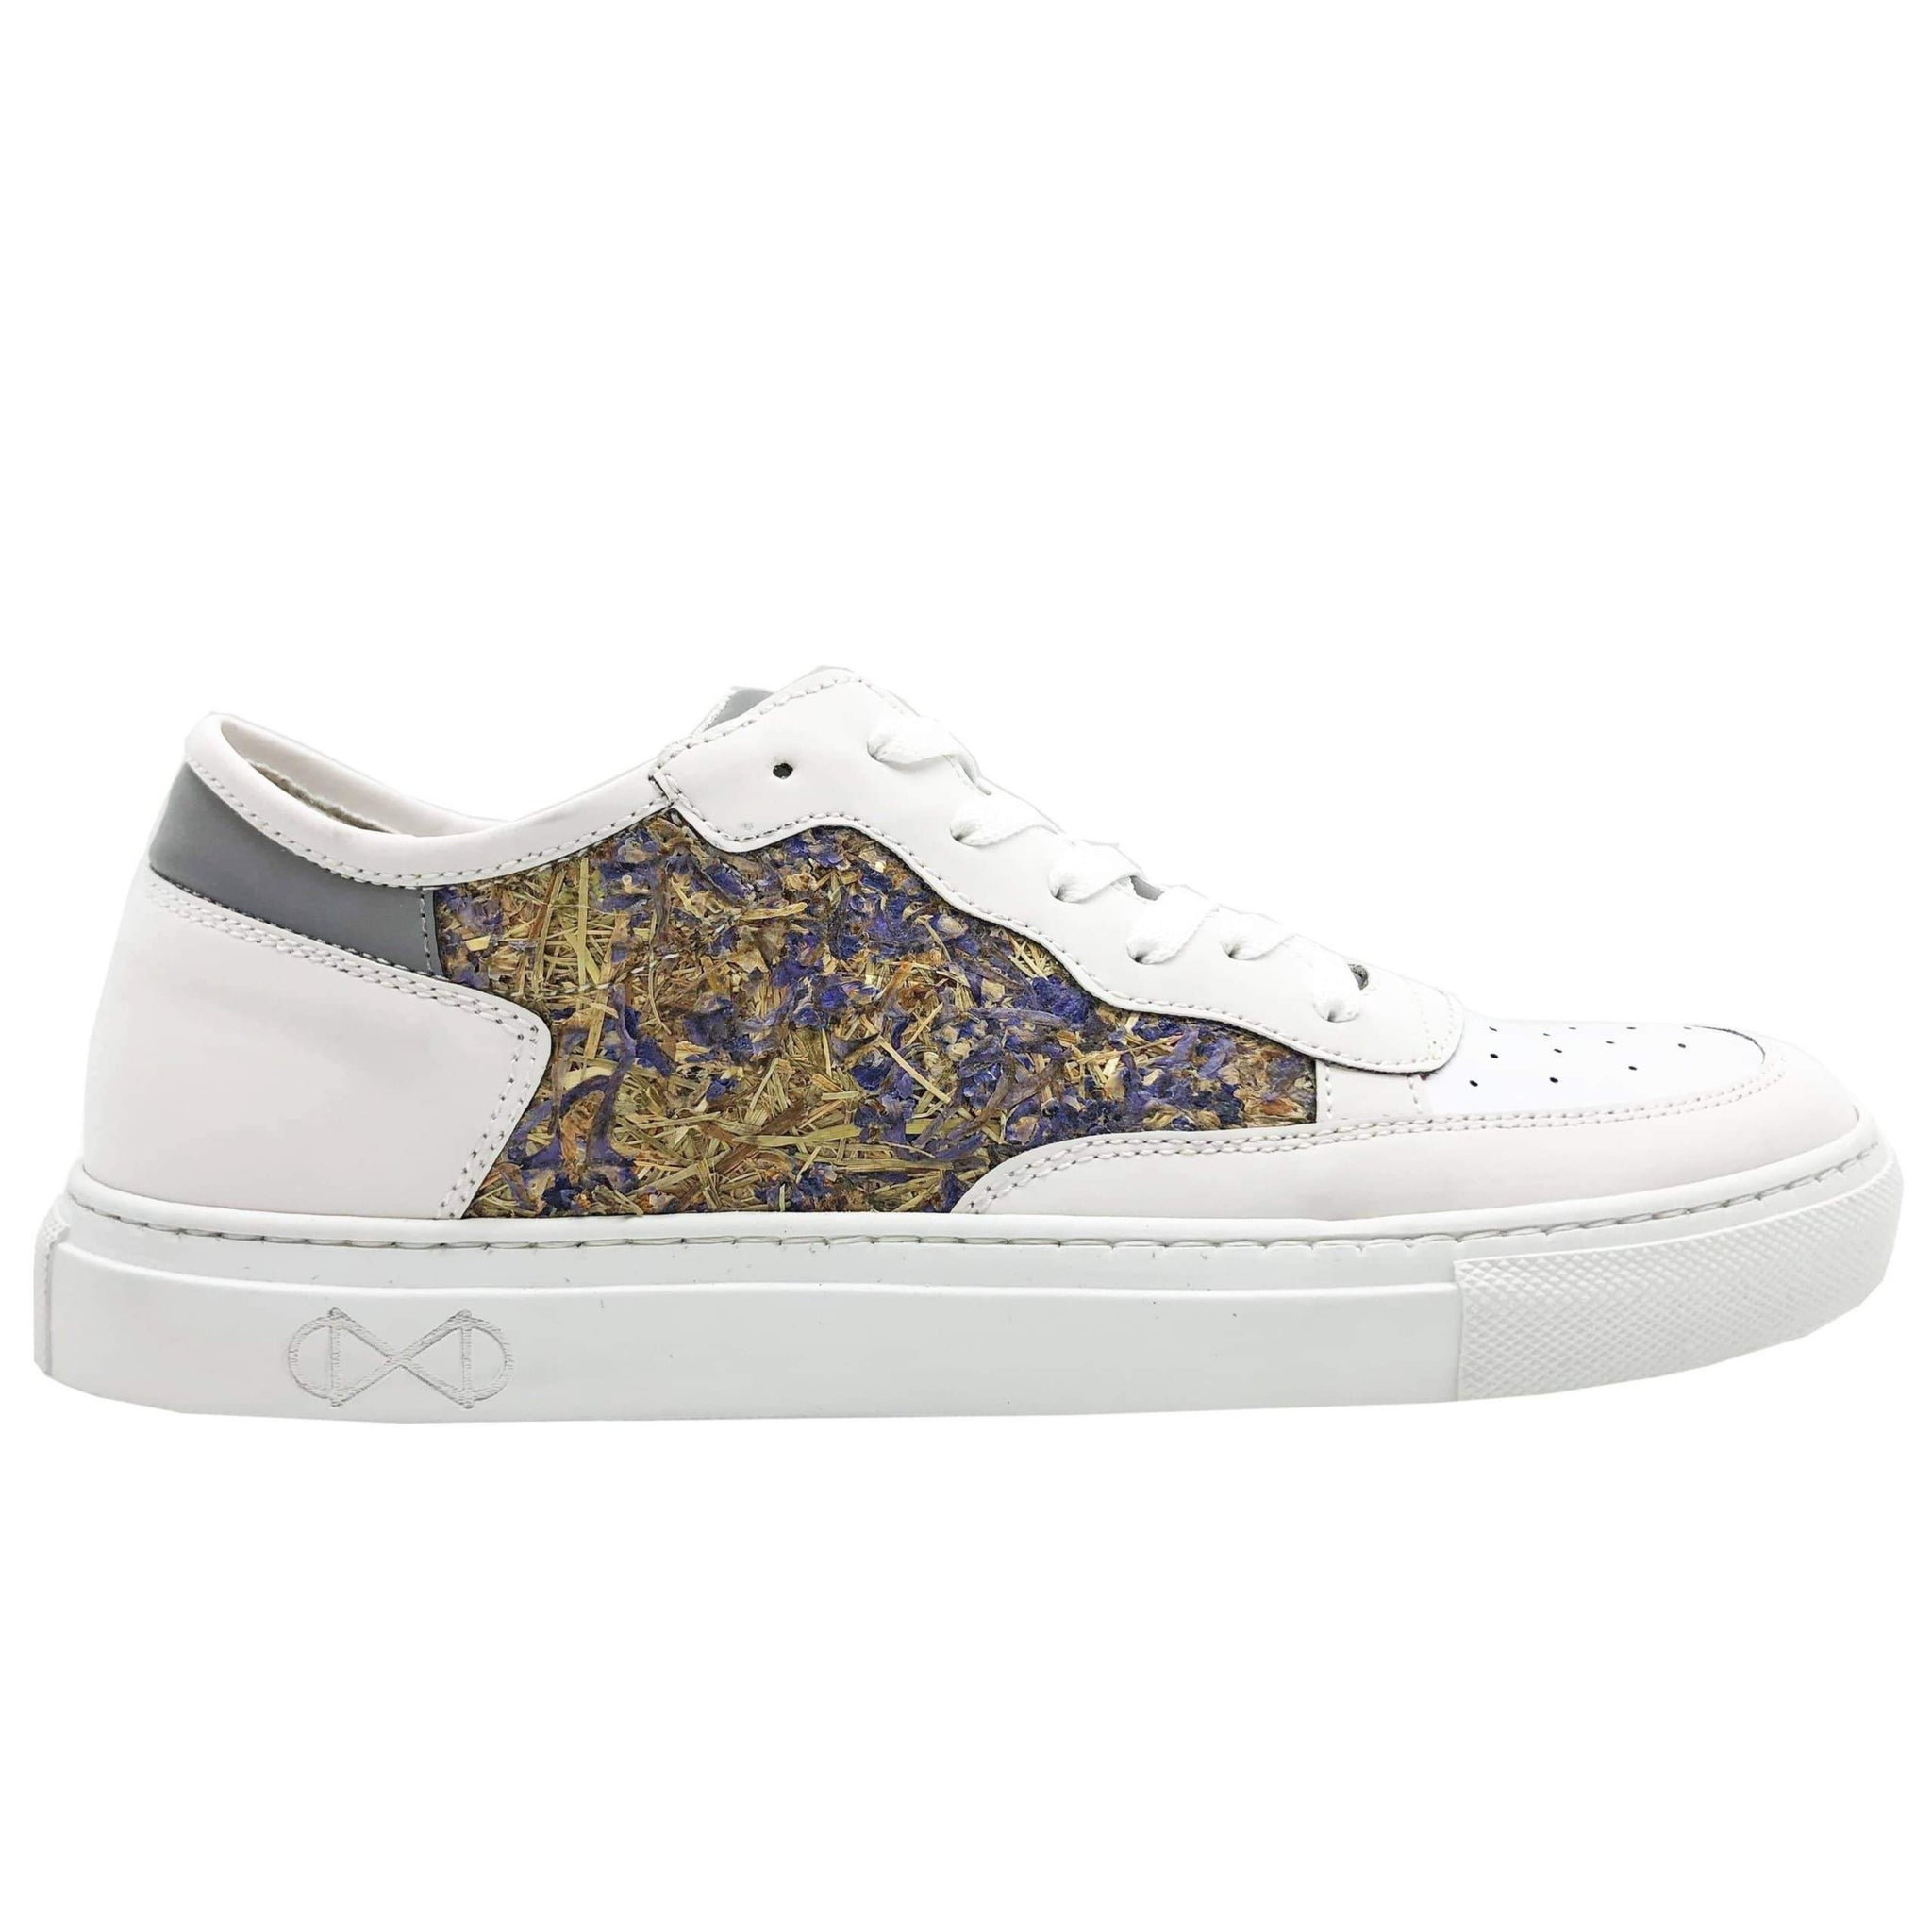 NAT 2 shoe Delphinium Sneakers. Delphinium Flowers (Rittersporn). sustainable fashion ethical fashion